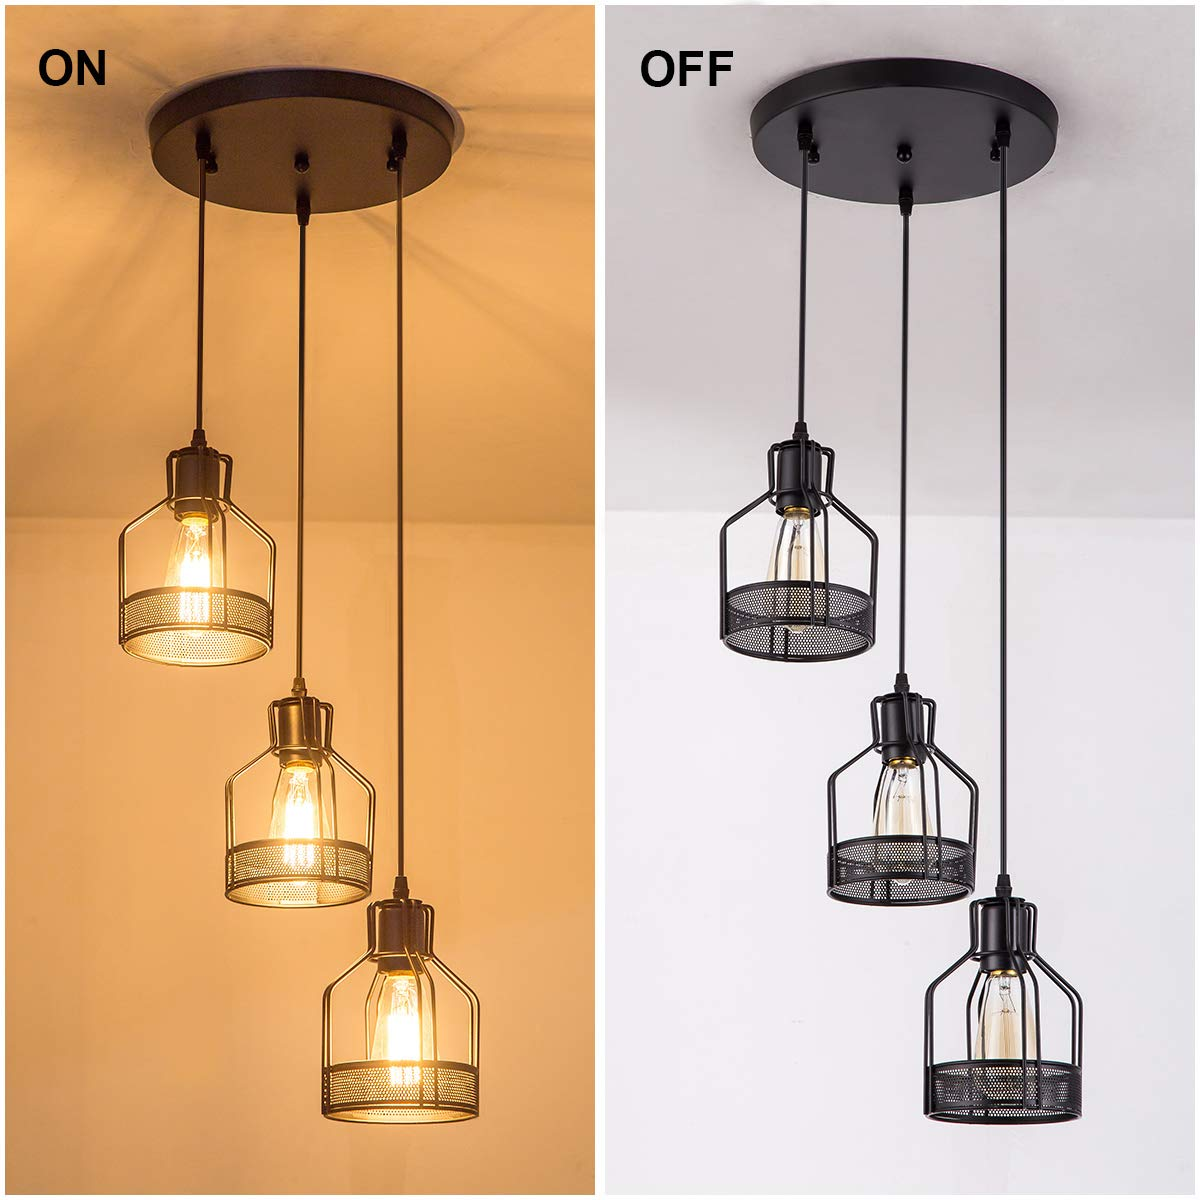 Pendant Light with Rustic Black Metal Cage Shade, Industrial Retro Matte Black Adjustable 3-Lights Hanging Lighting, Pendant lamp Fixtures for Home, Kitchen Island, Barn, Dining Room, Cafe, Farmhouse by ZYuan (Image #4)